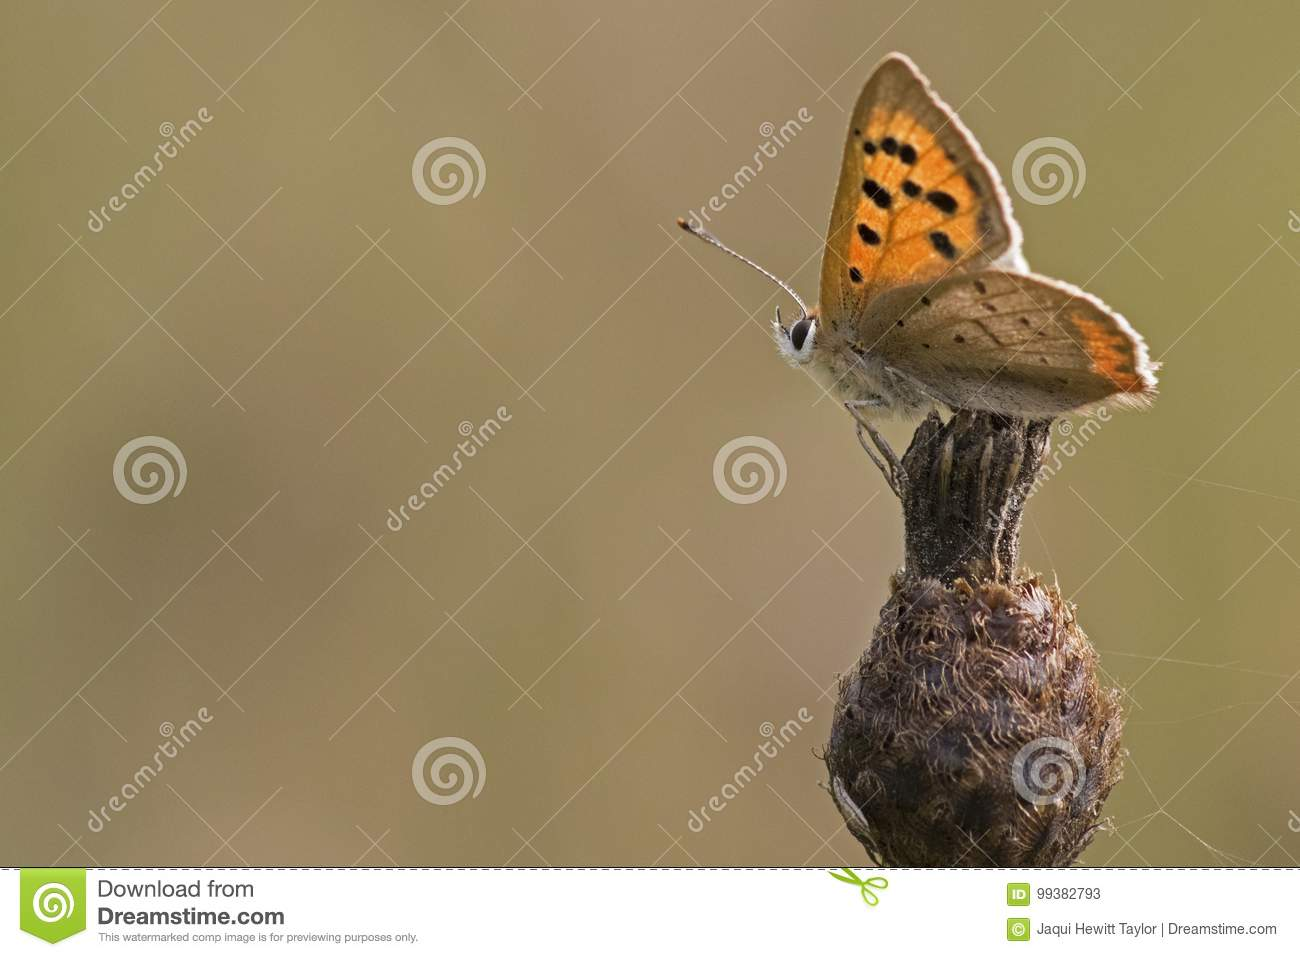 A butterfly on a seed head